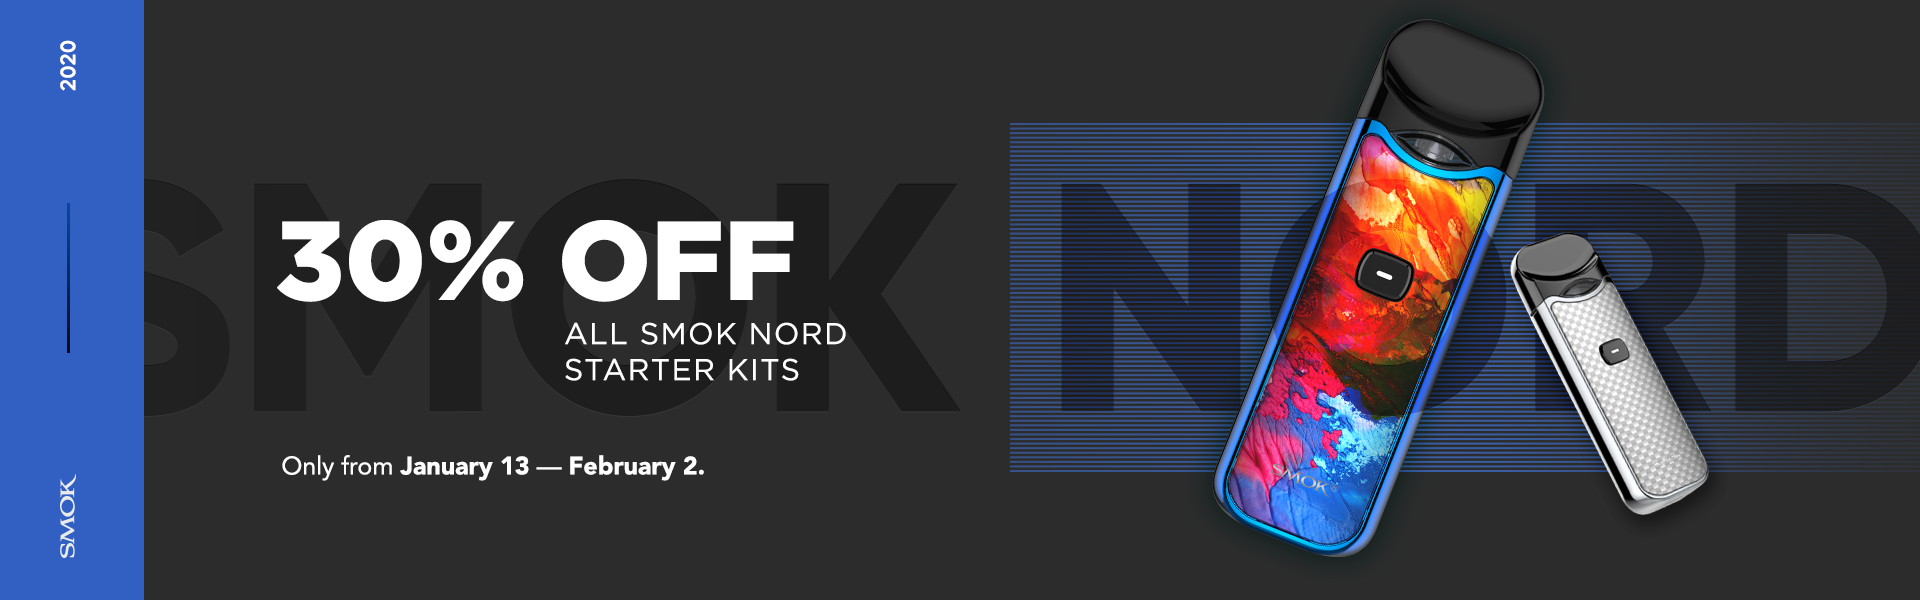 It's the True Nord Sale! All Smok Nord Open Pod Starter Kits are 30 Percent Off until February 2